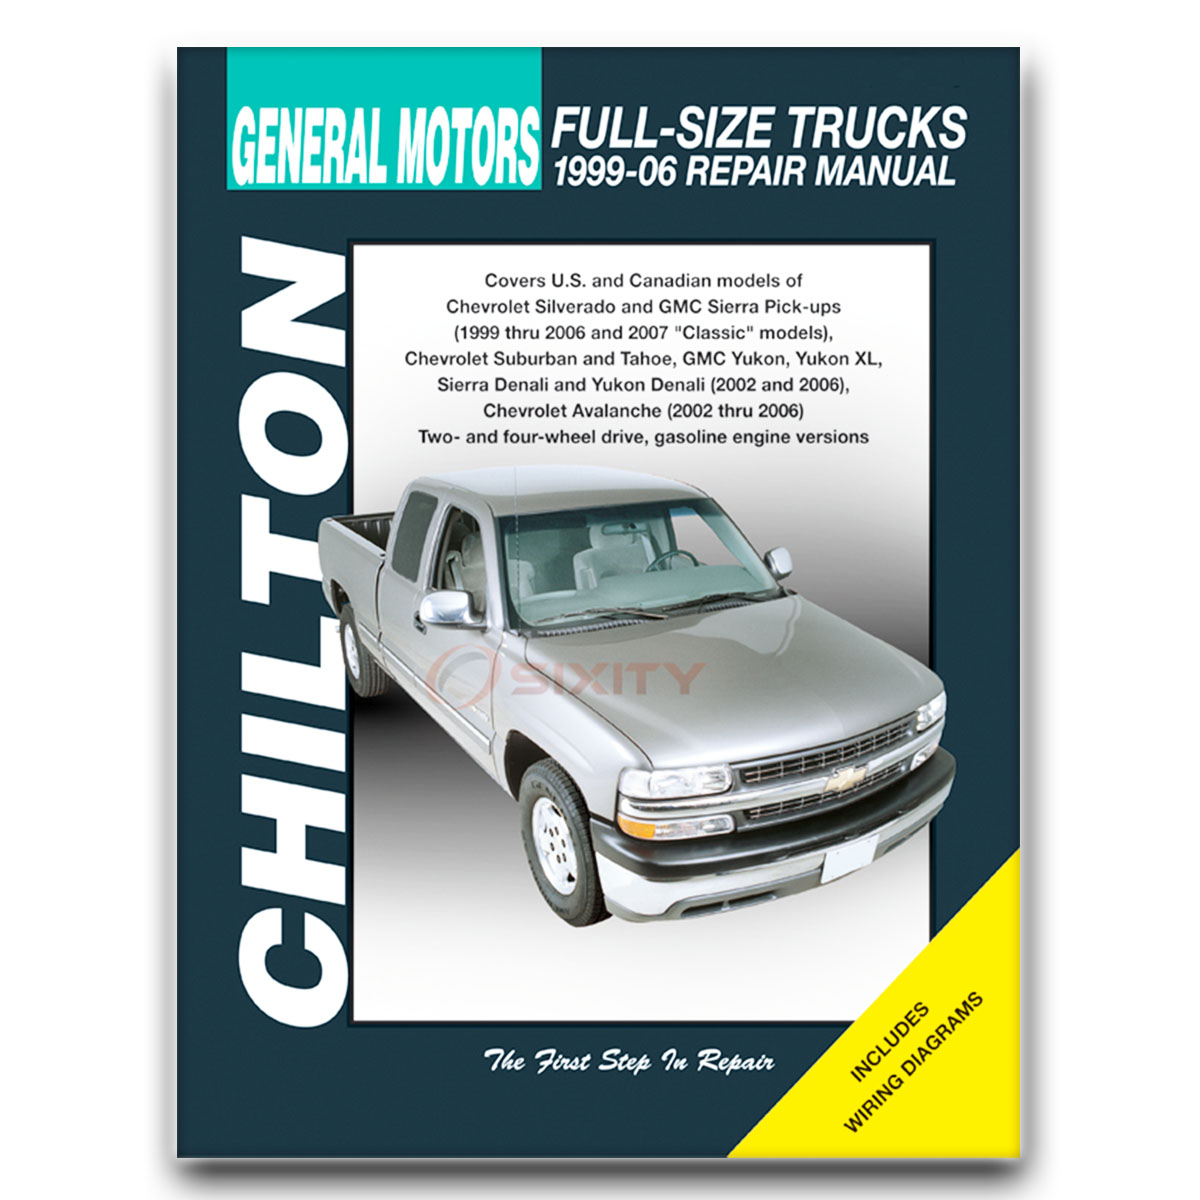 2000 Gmc Sierra 2500 Manual K2500 Wiring Diagram Hd Chilton Repair Slt Wt Base Sle Shop Rh Ebay Com 2001 3500